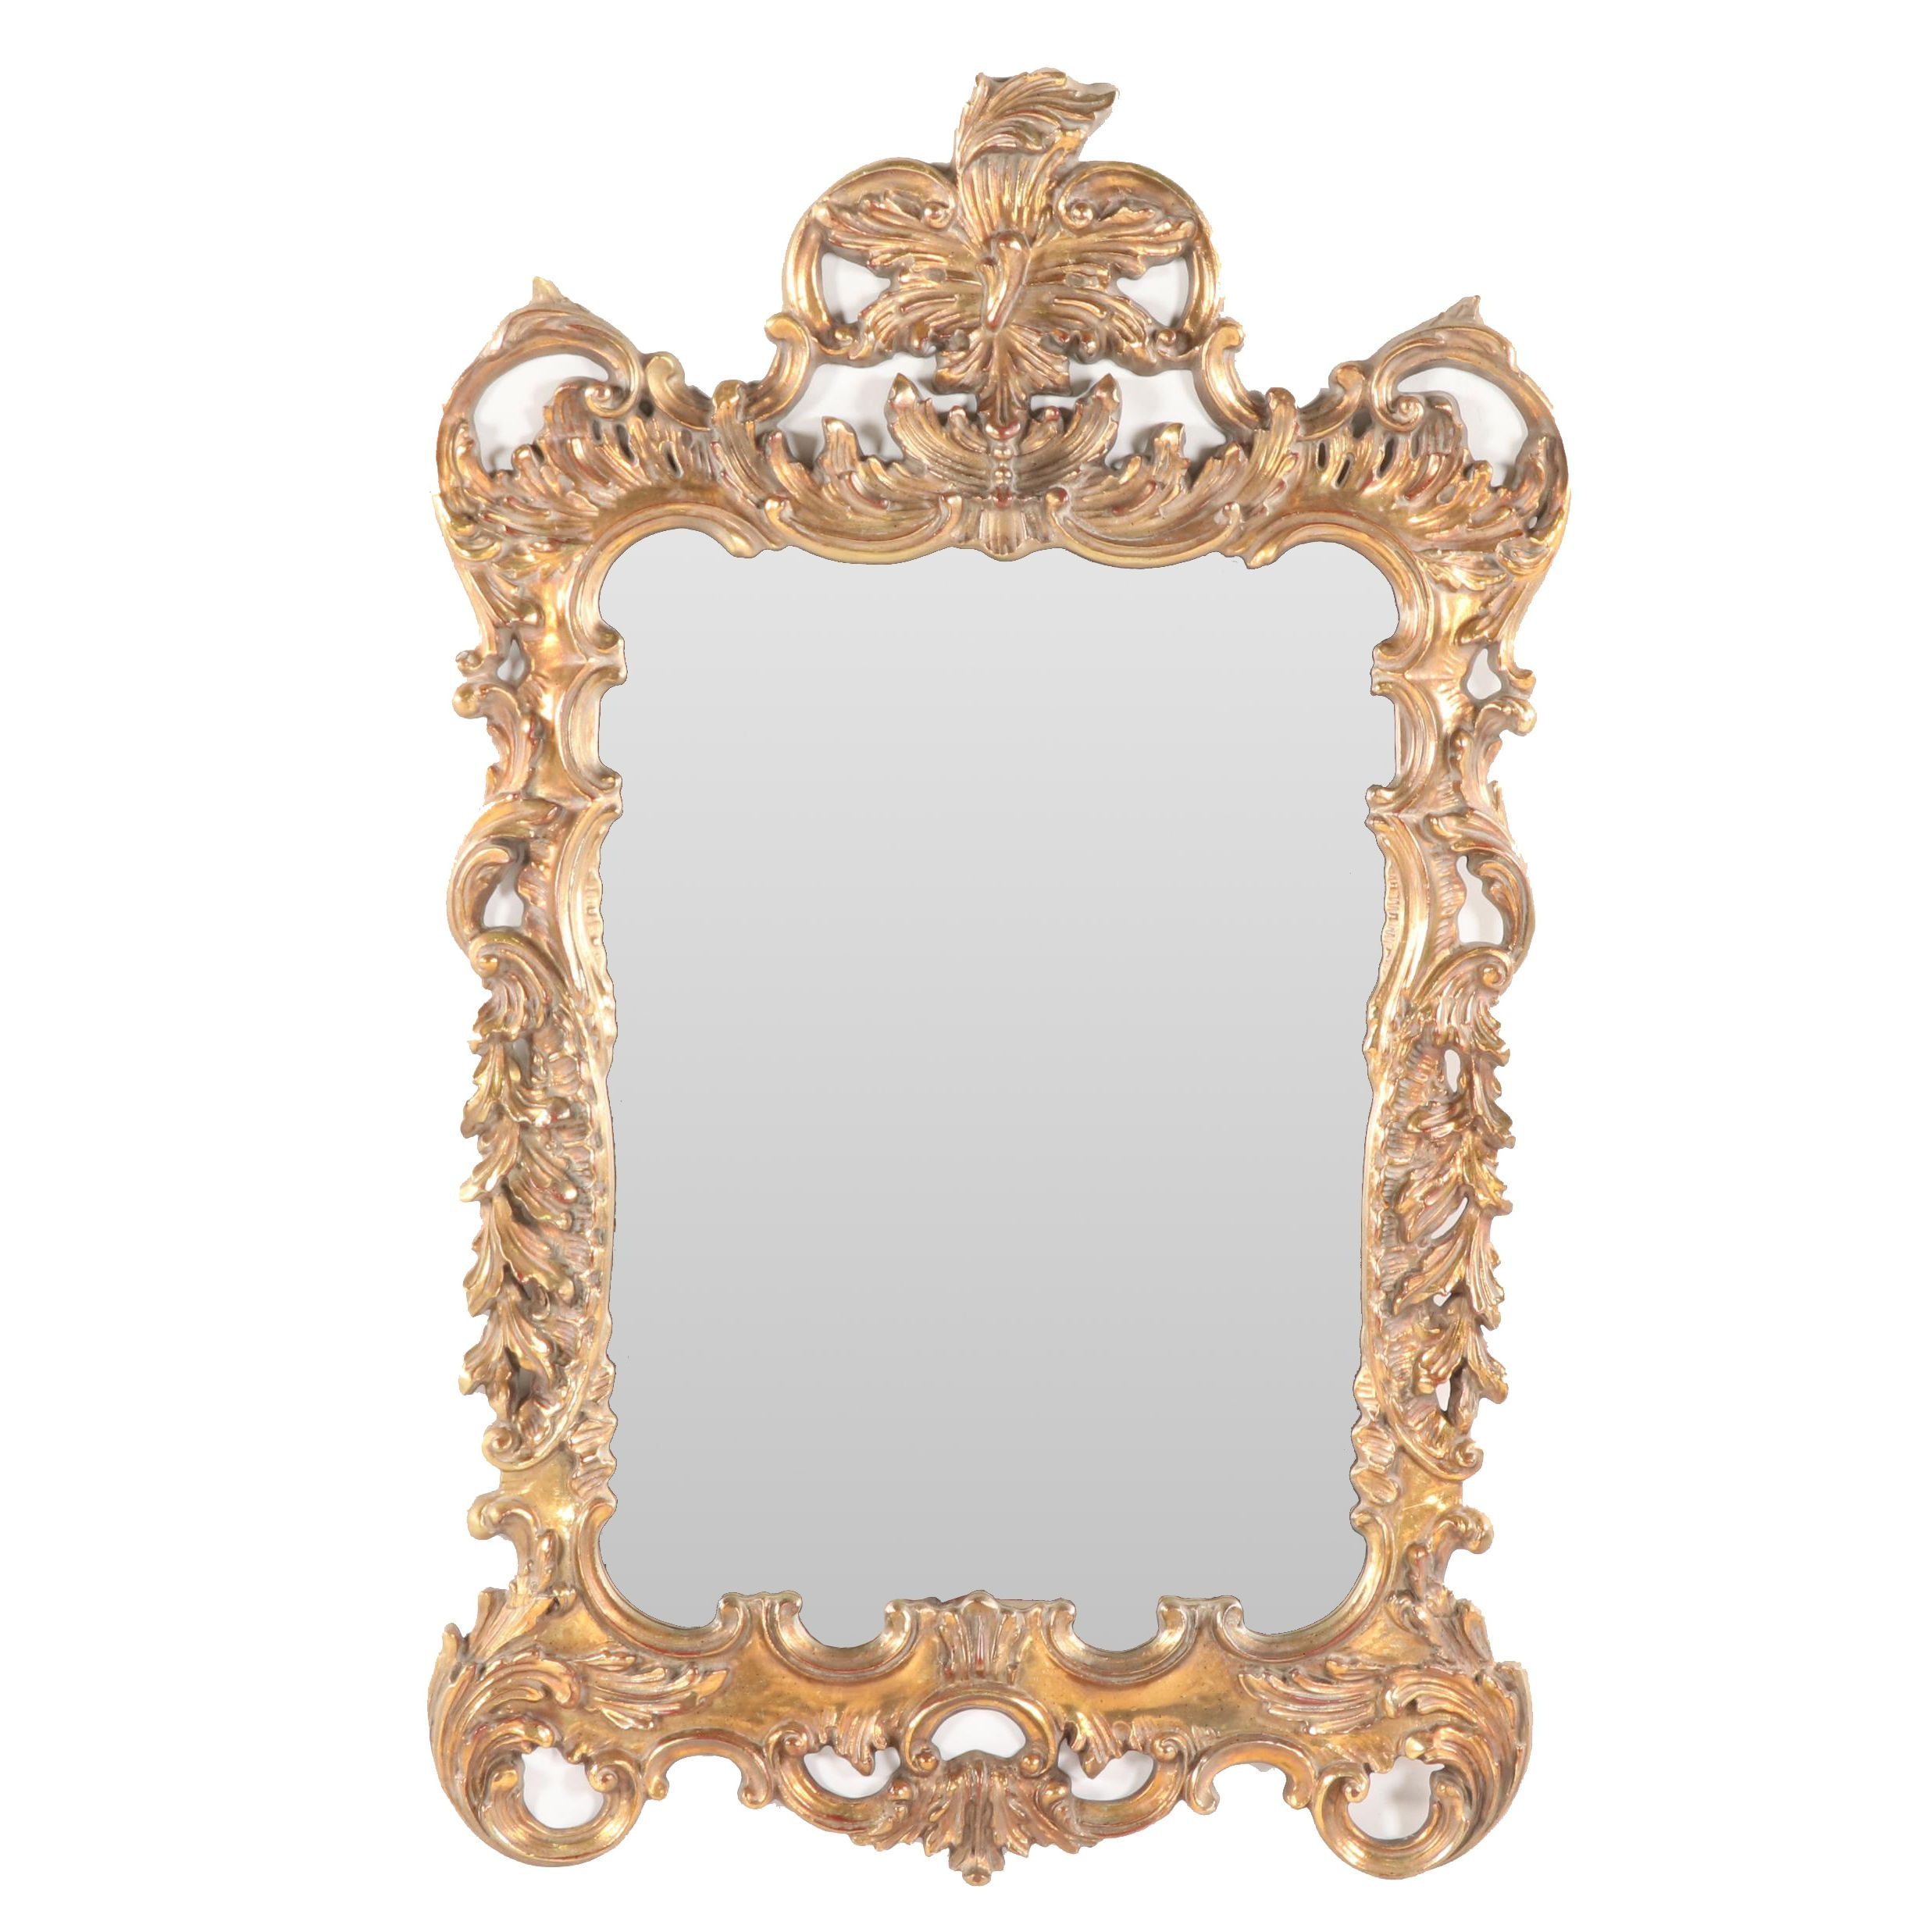 Rococo Style Gilded Wall Mirror, 21st Century